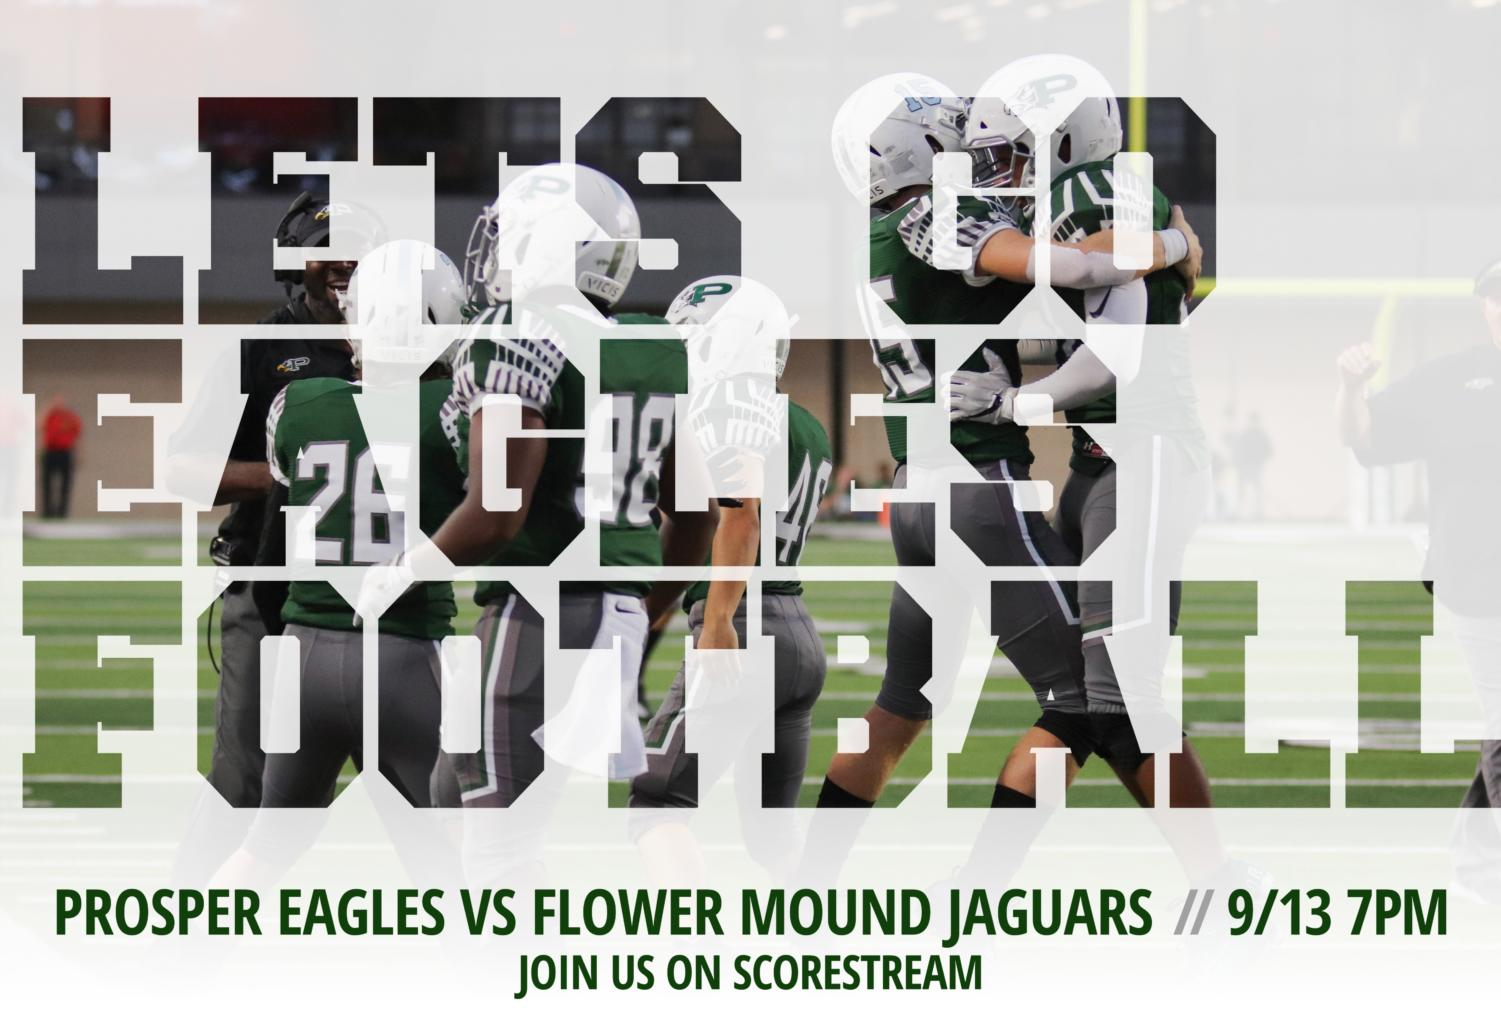 Top 5 things to look out for at Flower Mound game